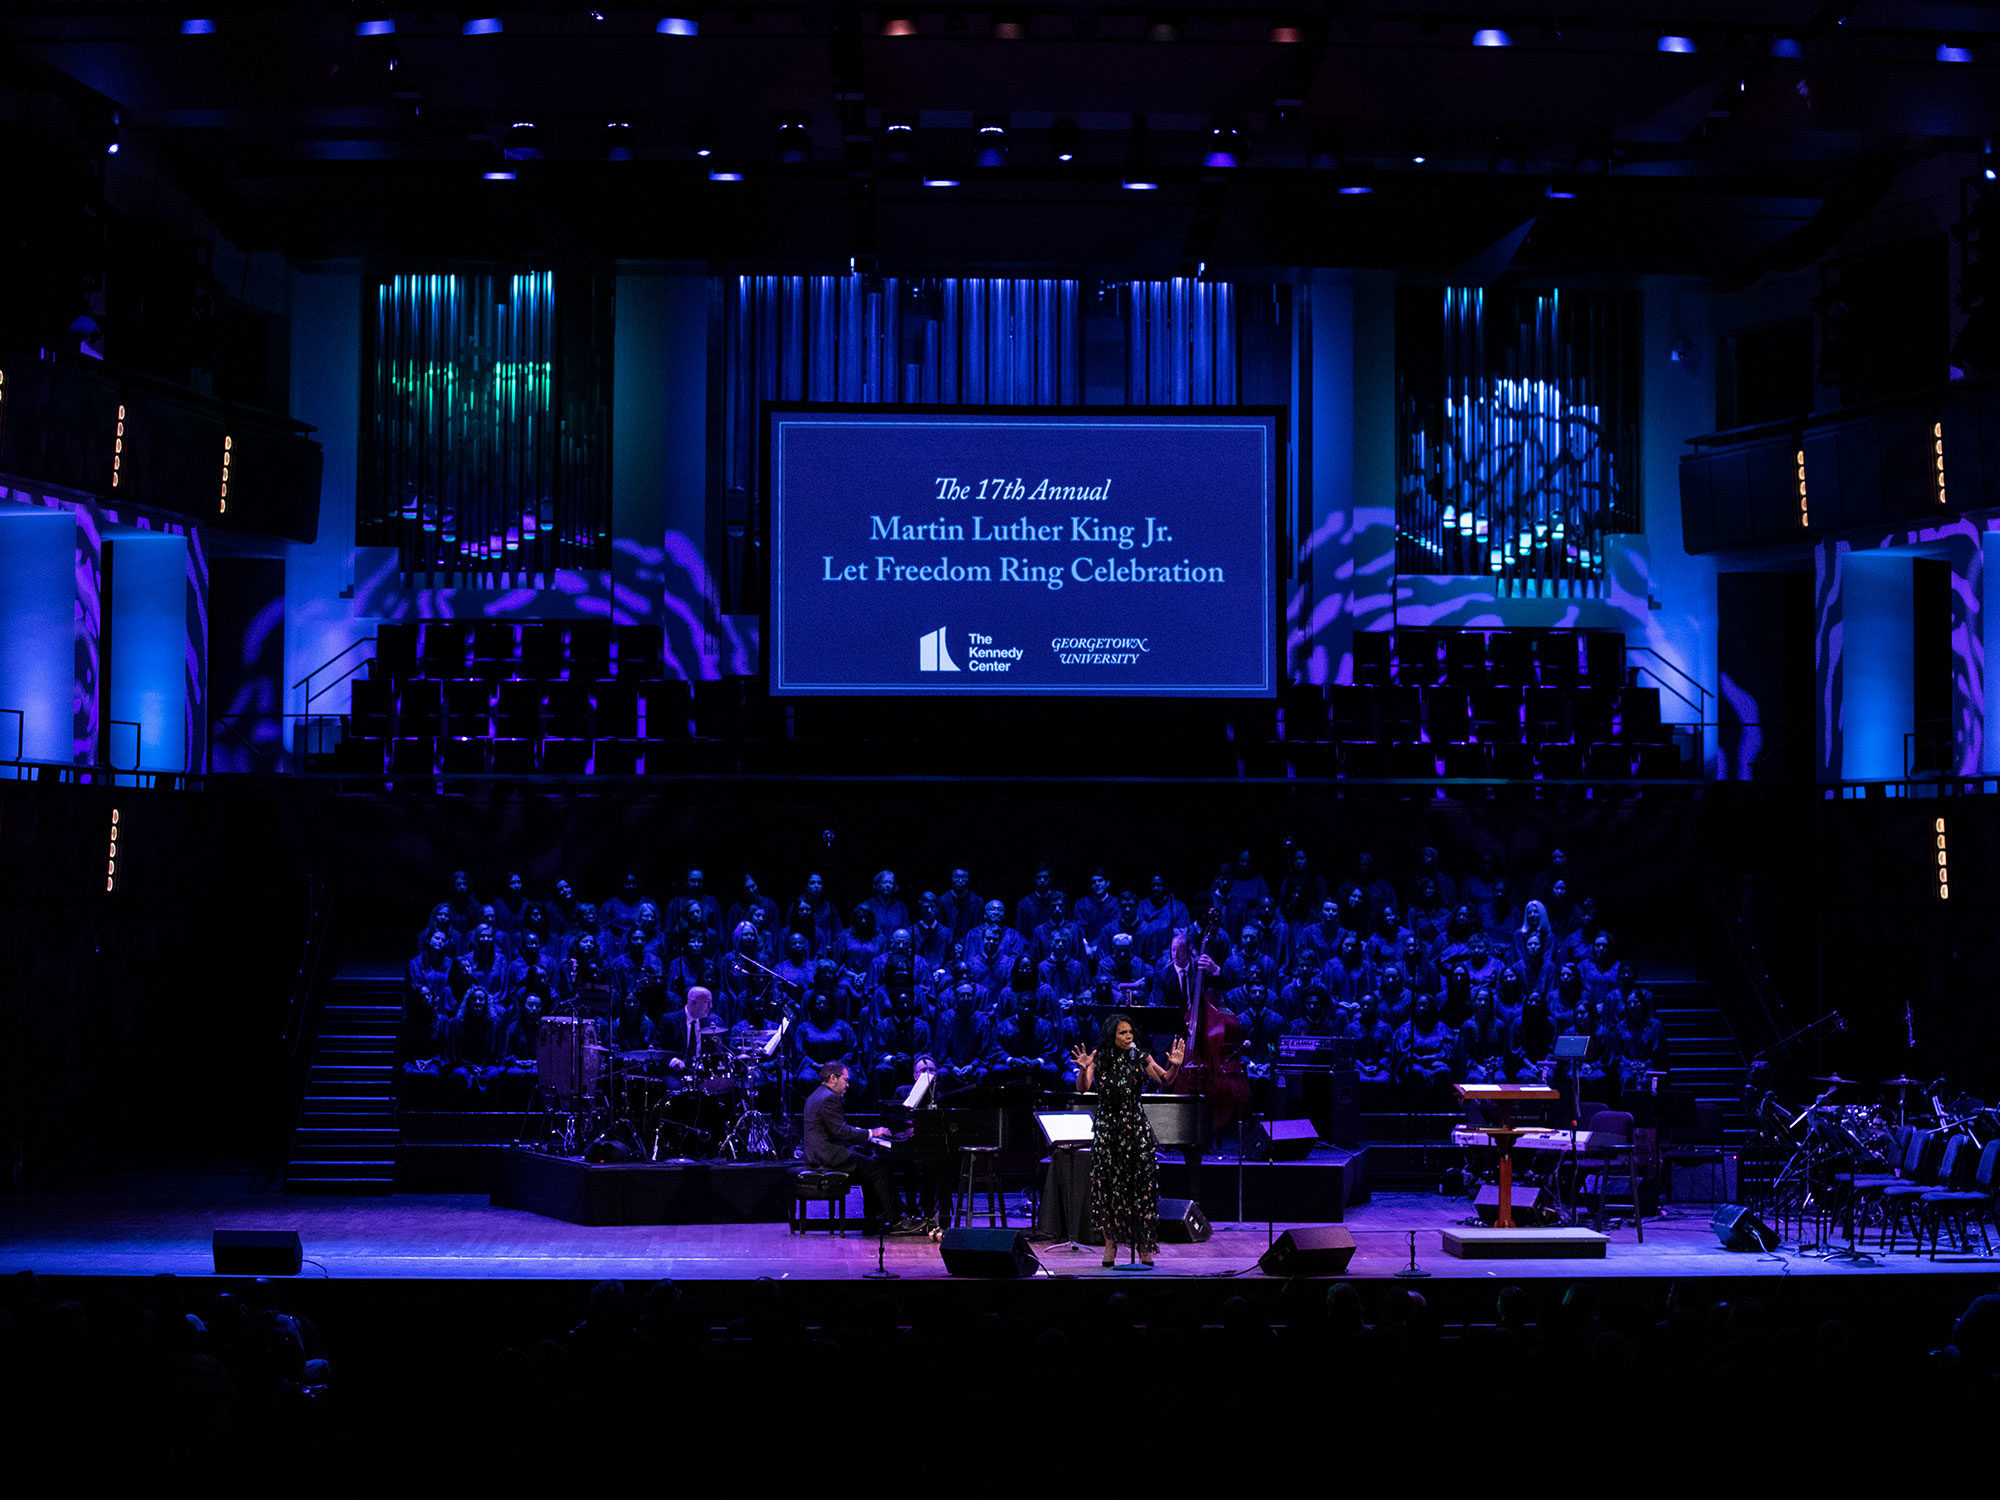 Let Freedom Ring Celebration at the Kennedy Center